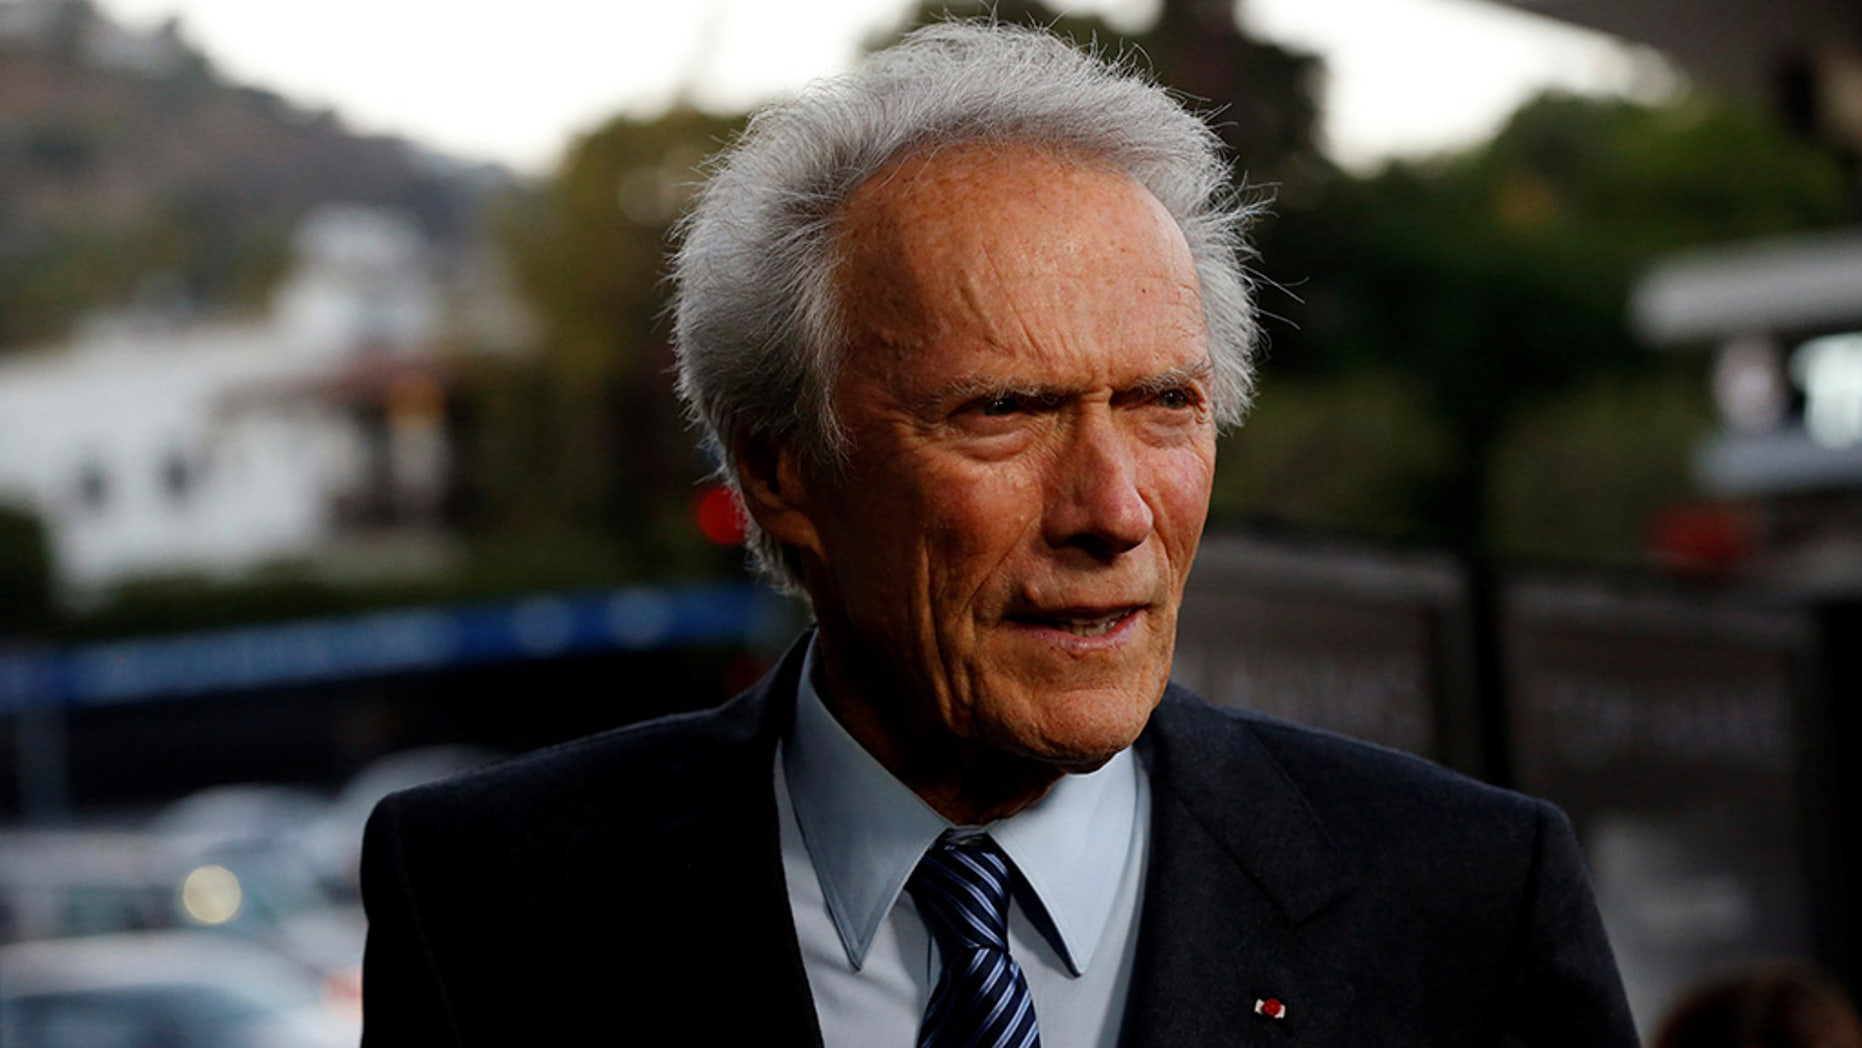 Hollywood legend Clint Eastwood reportedly filed a lawsuit Tuesday against a medical company.